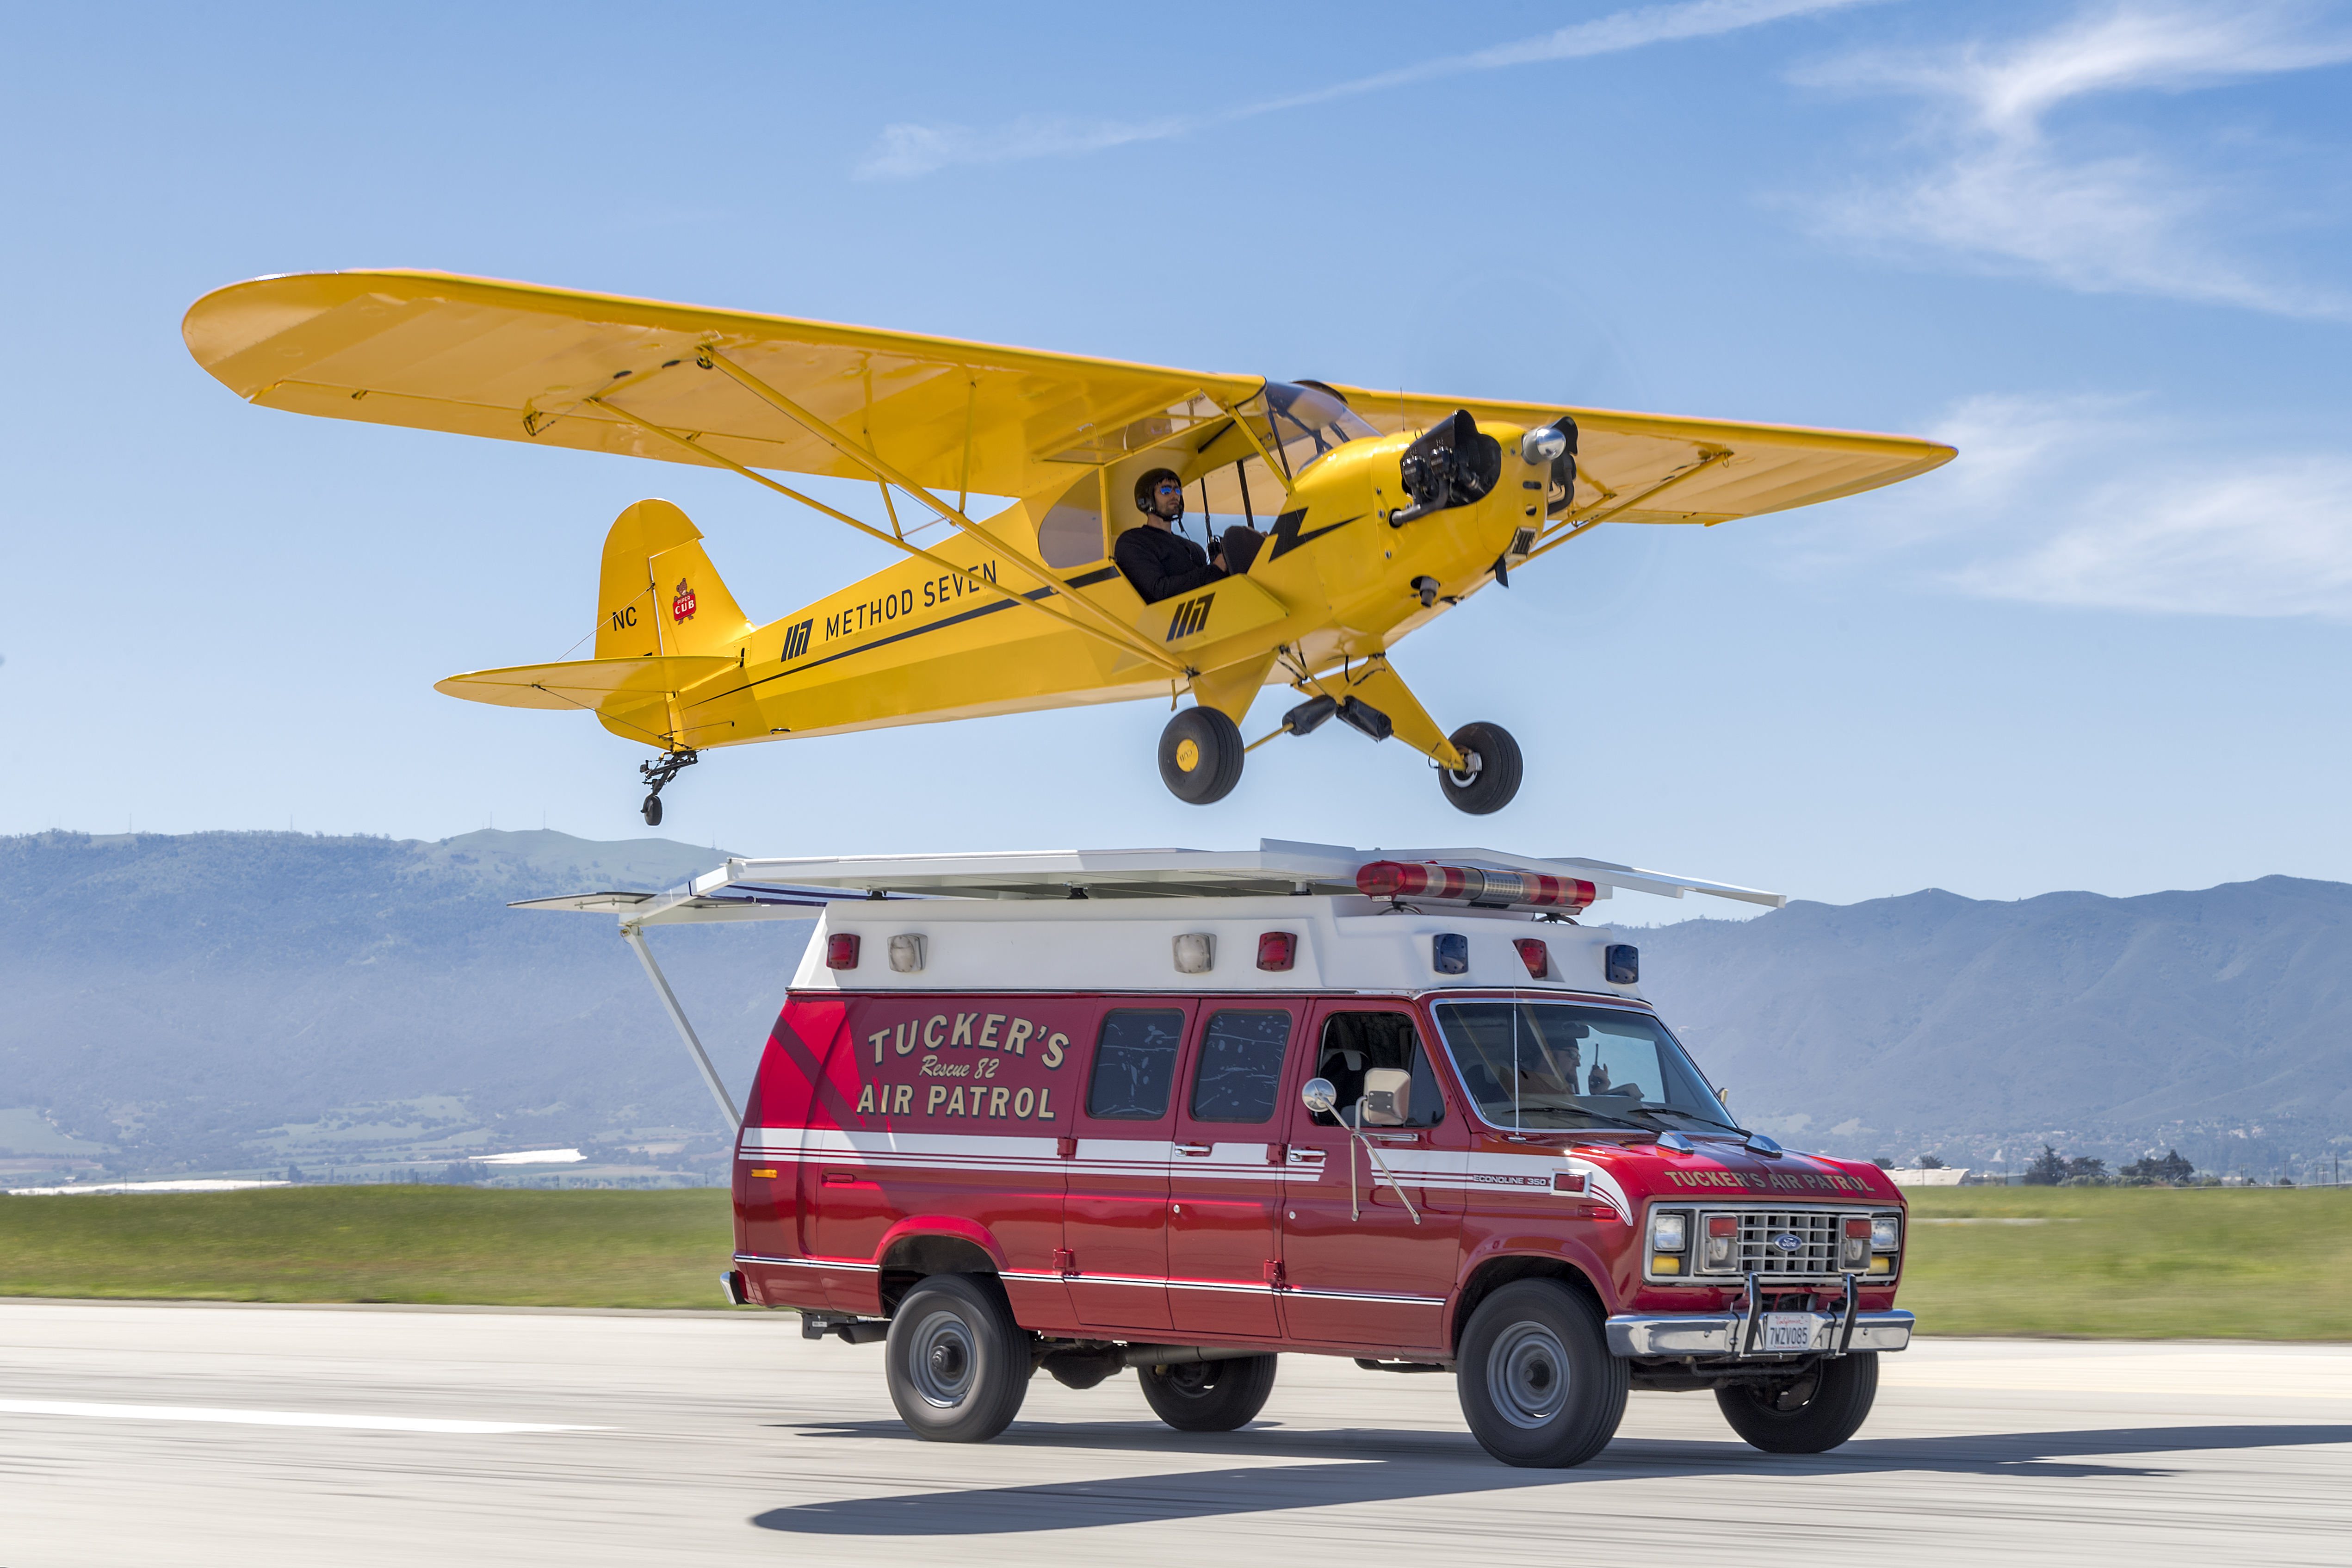 Photo of Eric Tucker practicing his stick and rudder skills as he flies low over the ambulance in his J3 Piper Cub.